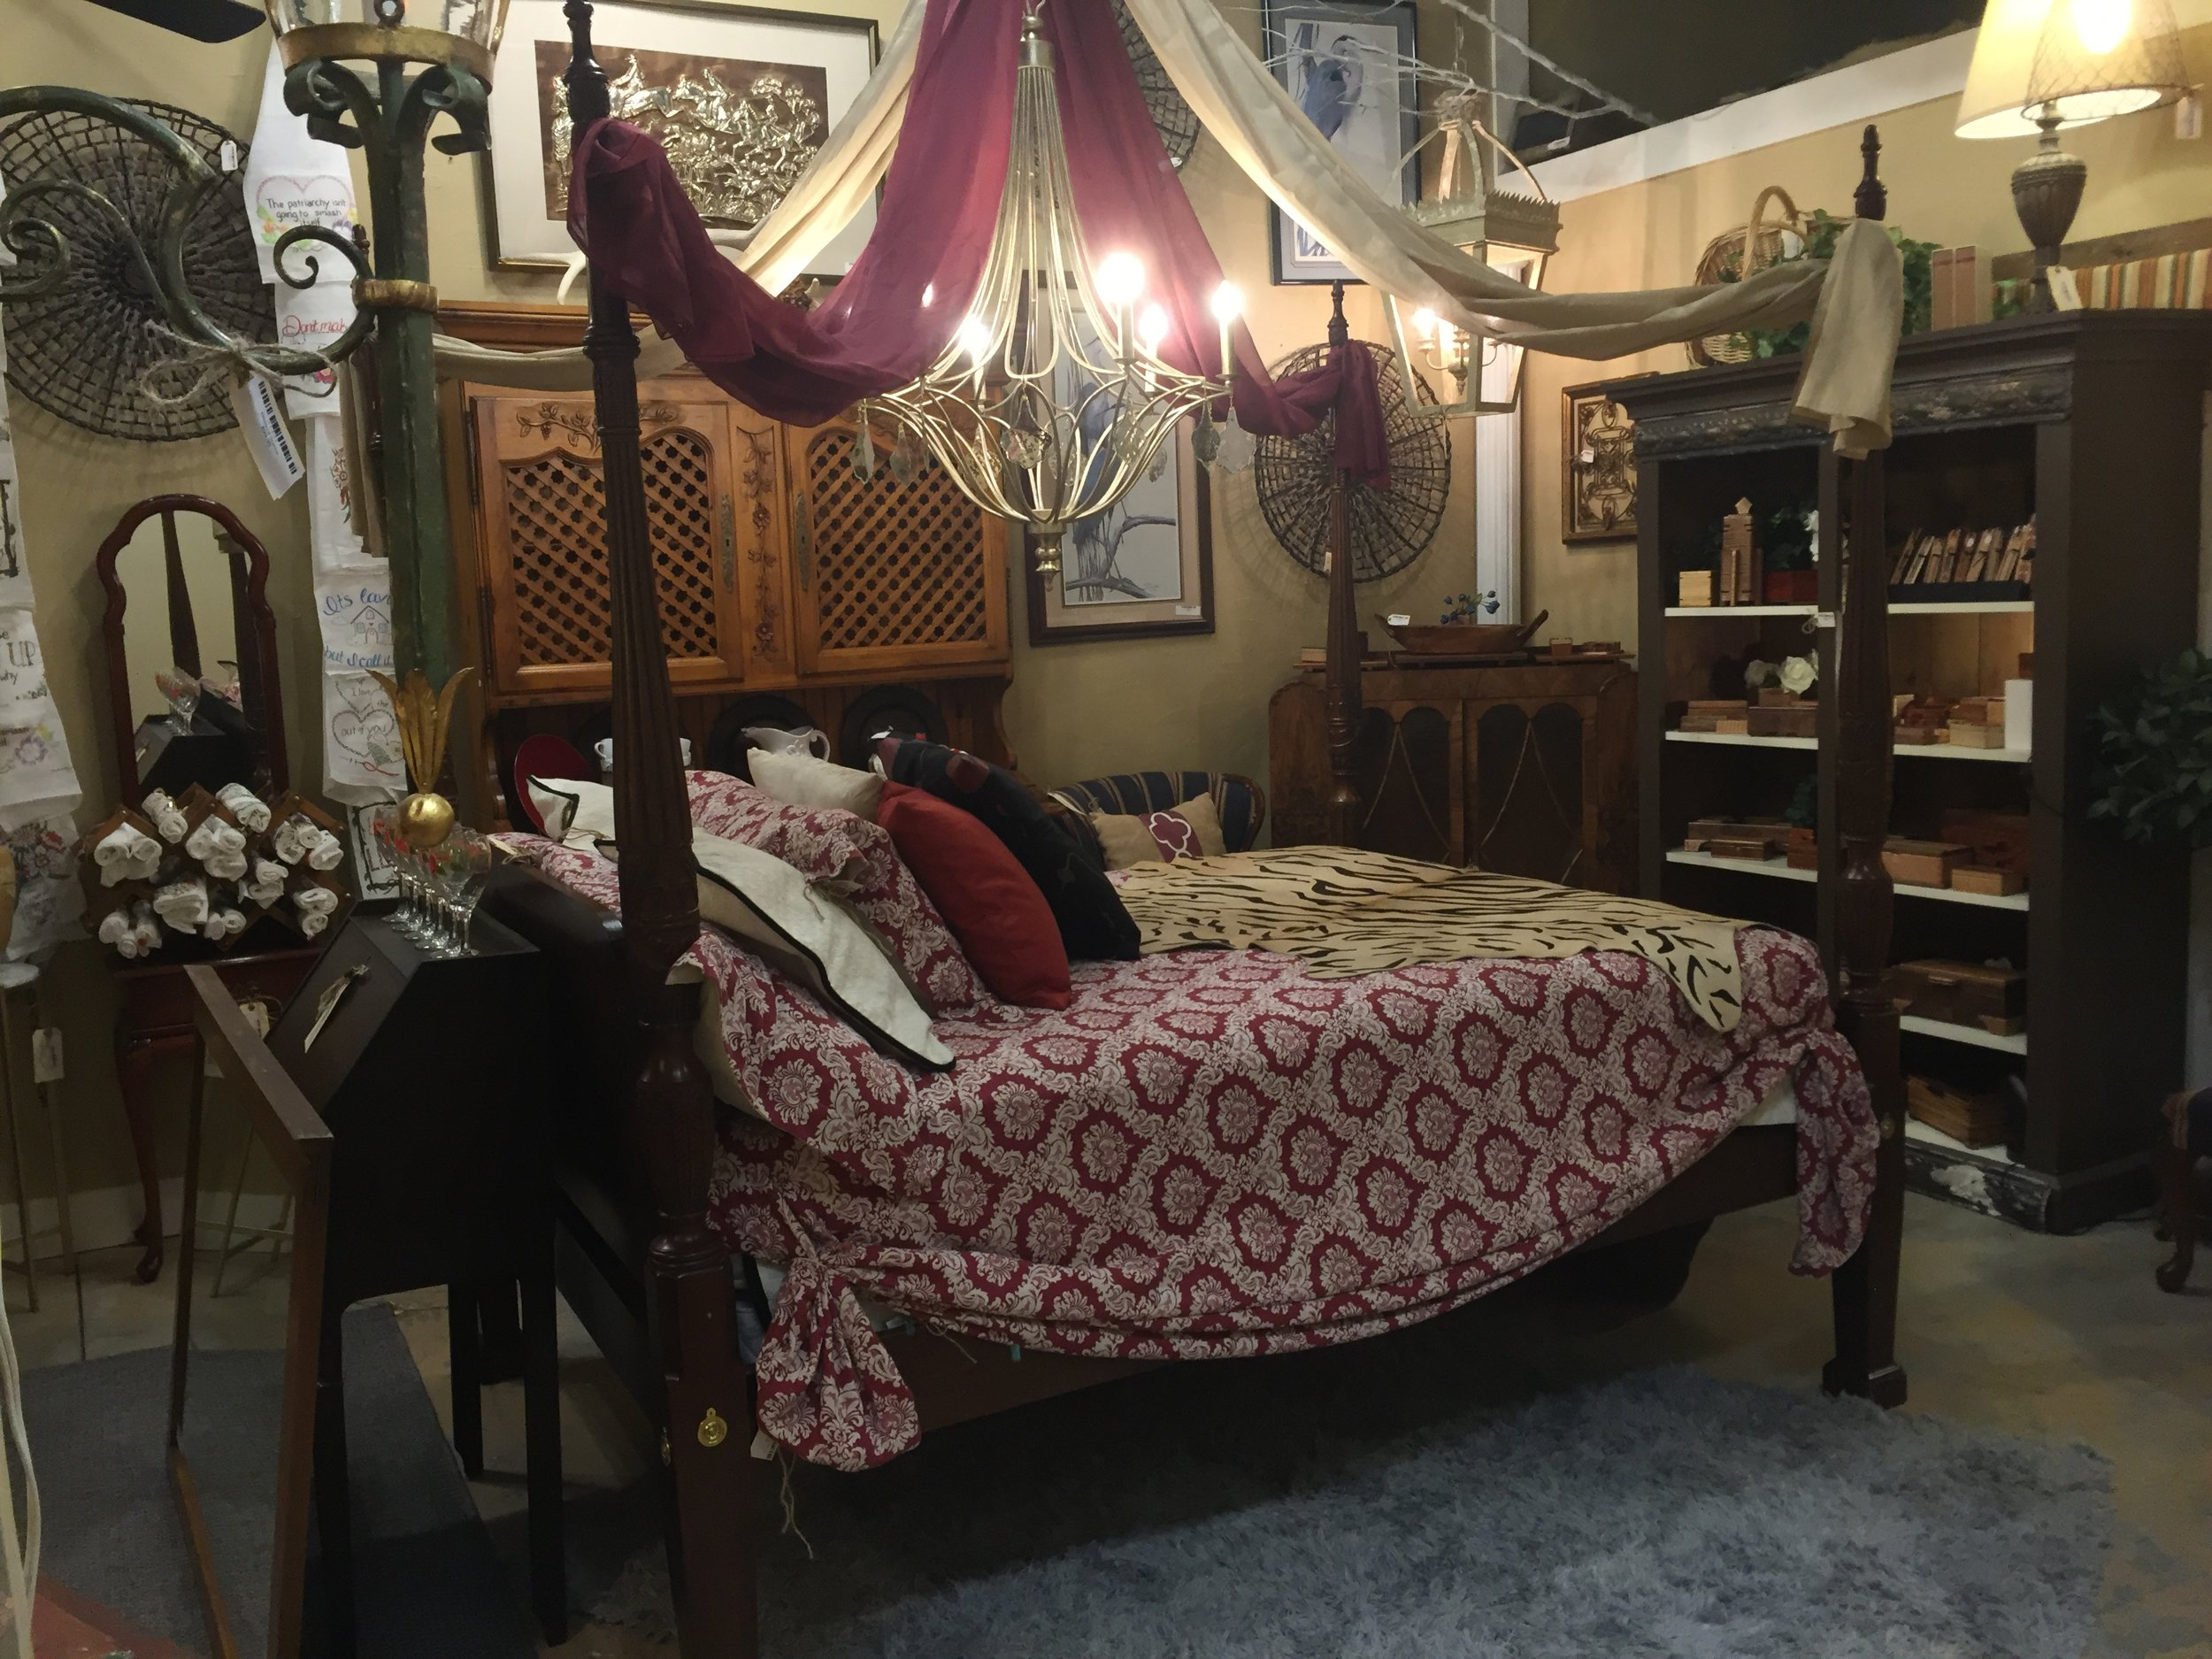 Queen Rice Pattern 4 Poster Bed $549.95 - 001 19696